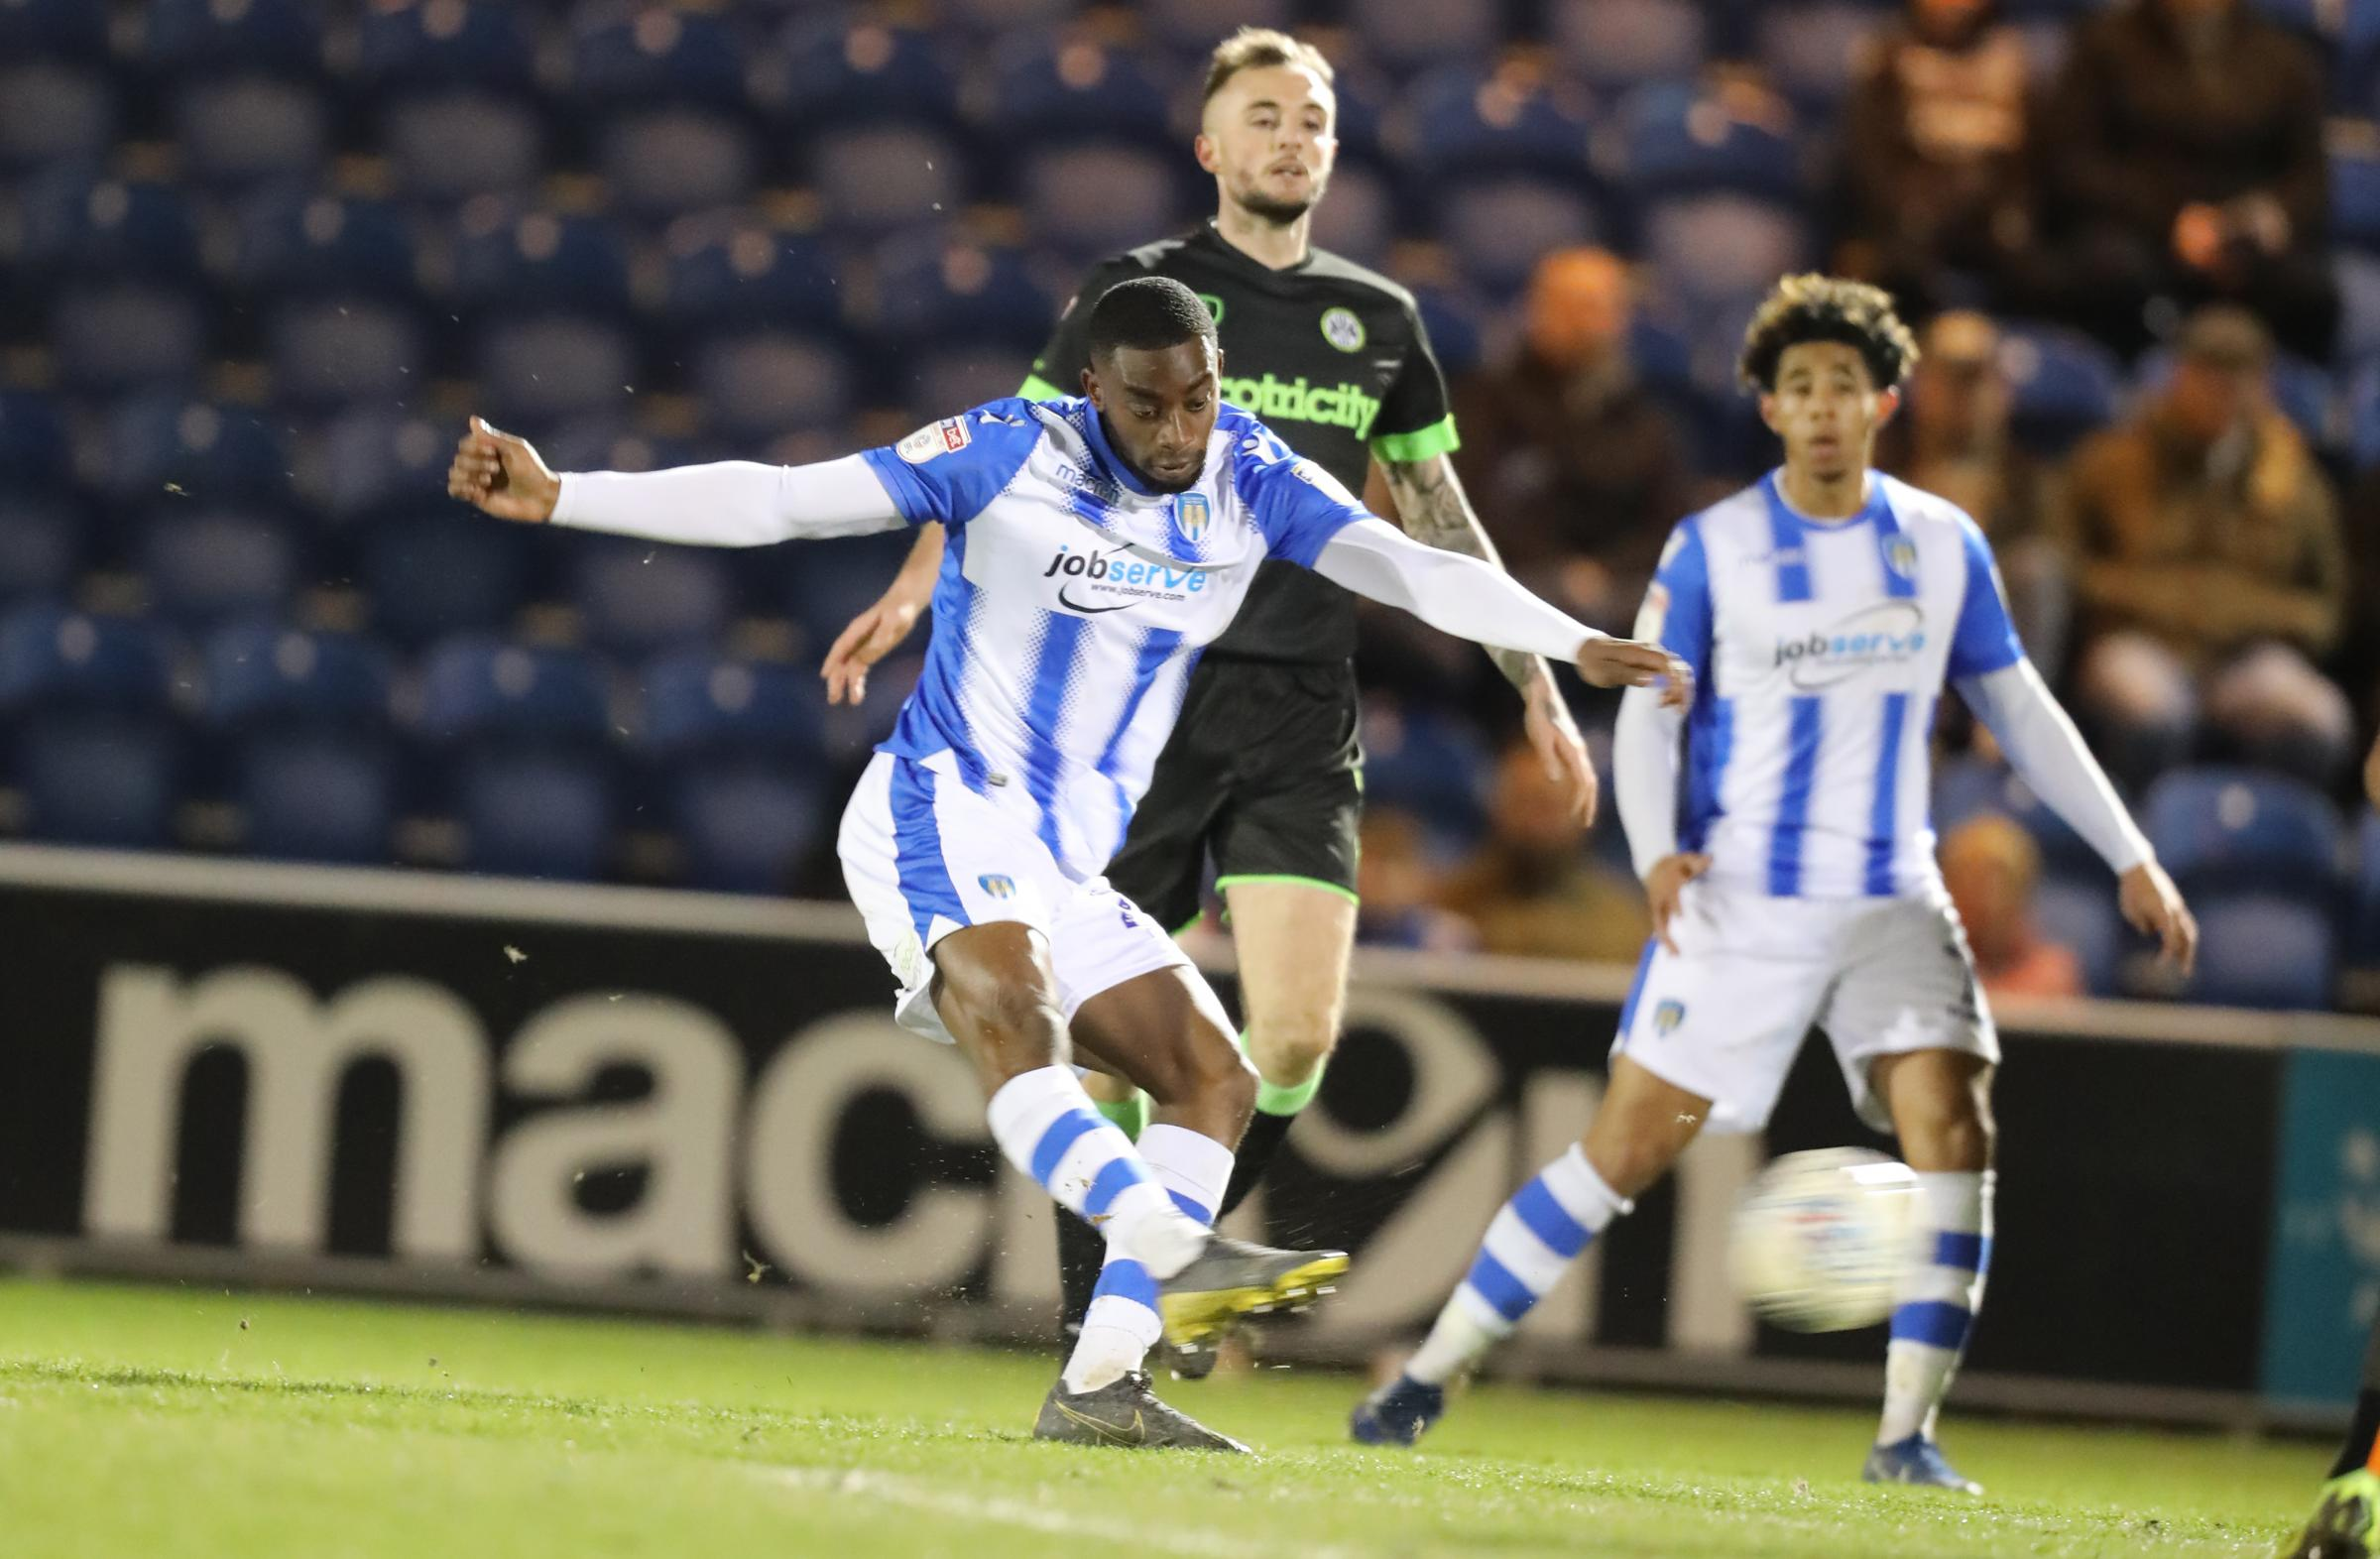 Trying his luck - Colchester United left-back Kane Vincent-Young tries a shot against Forest Green Rovers Picture: STEVE BRADING